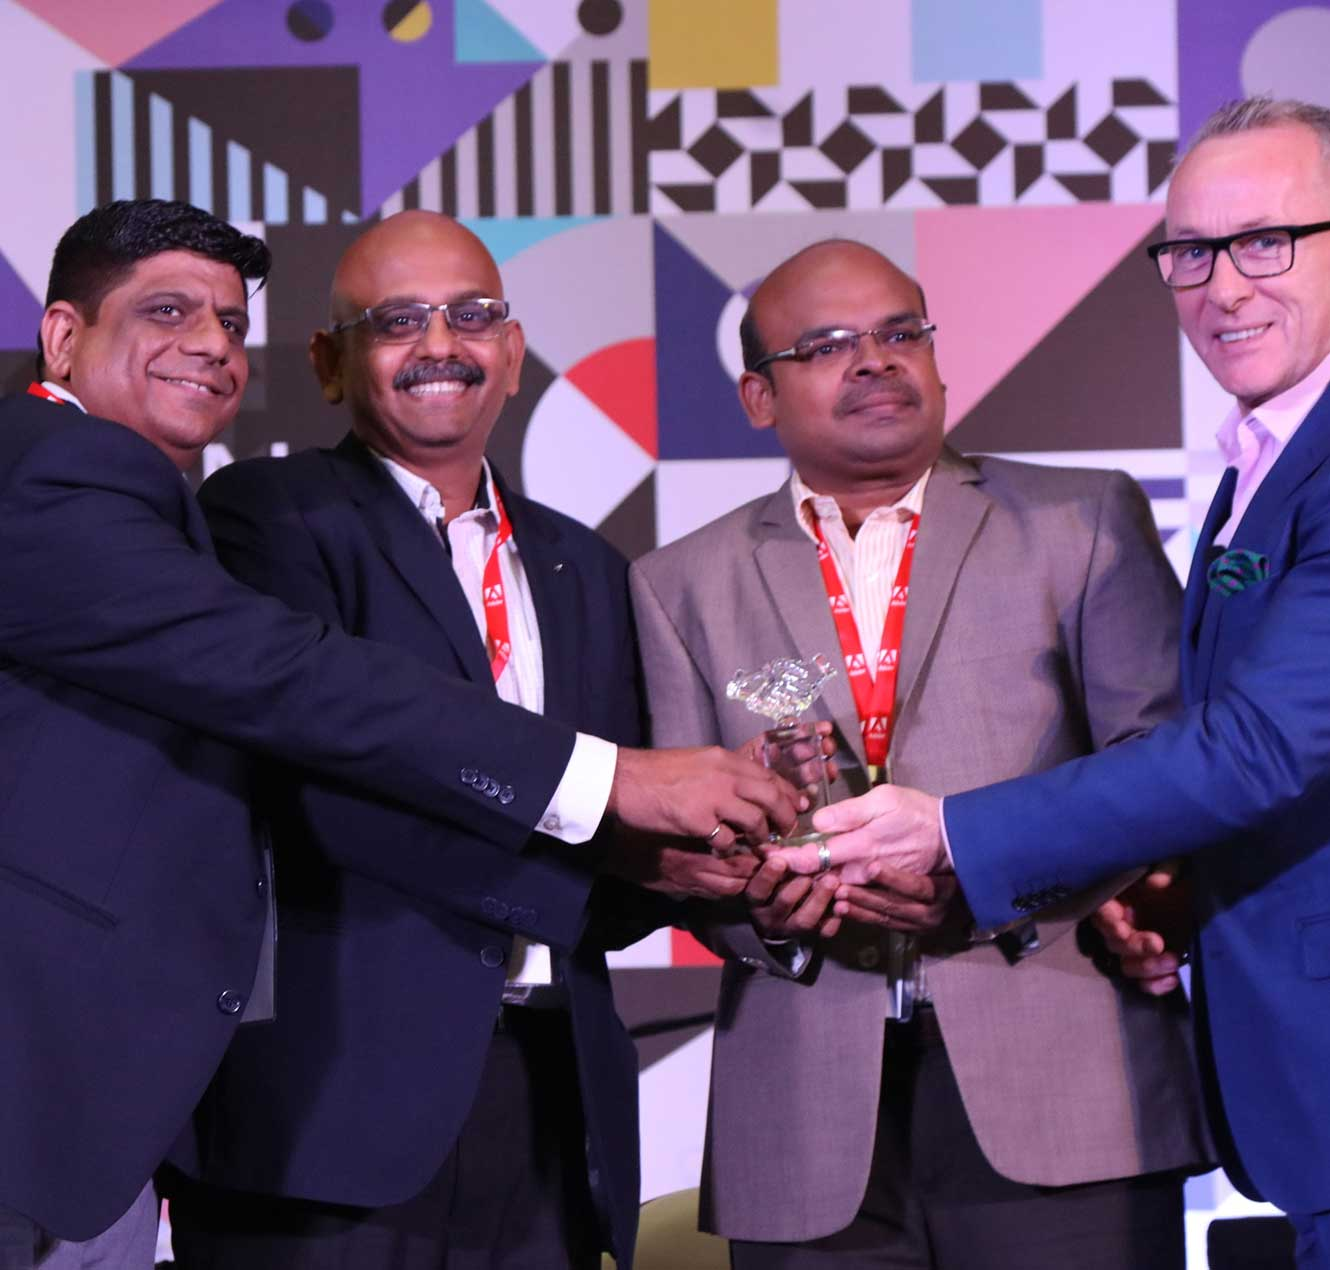 TCS Wins Adobe System Integrator Partner of the Year 2018 for India region